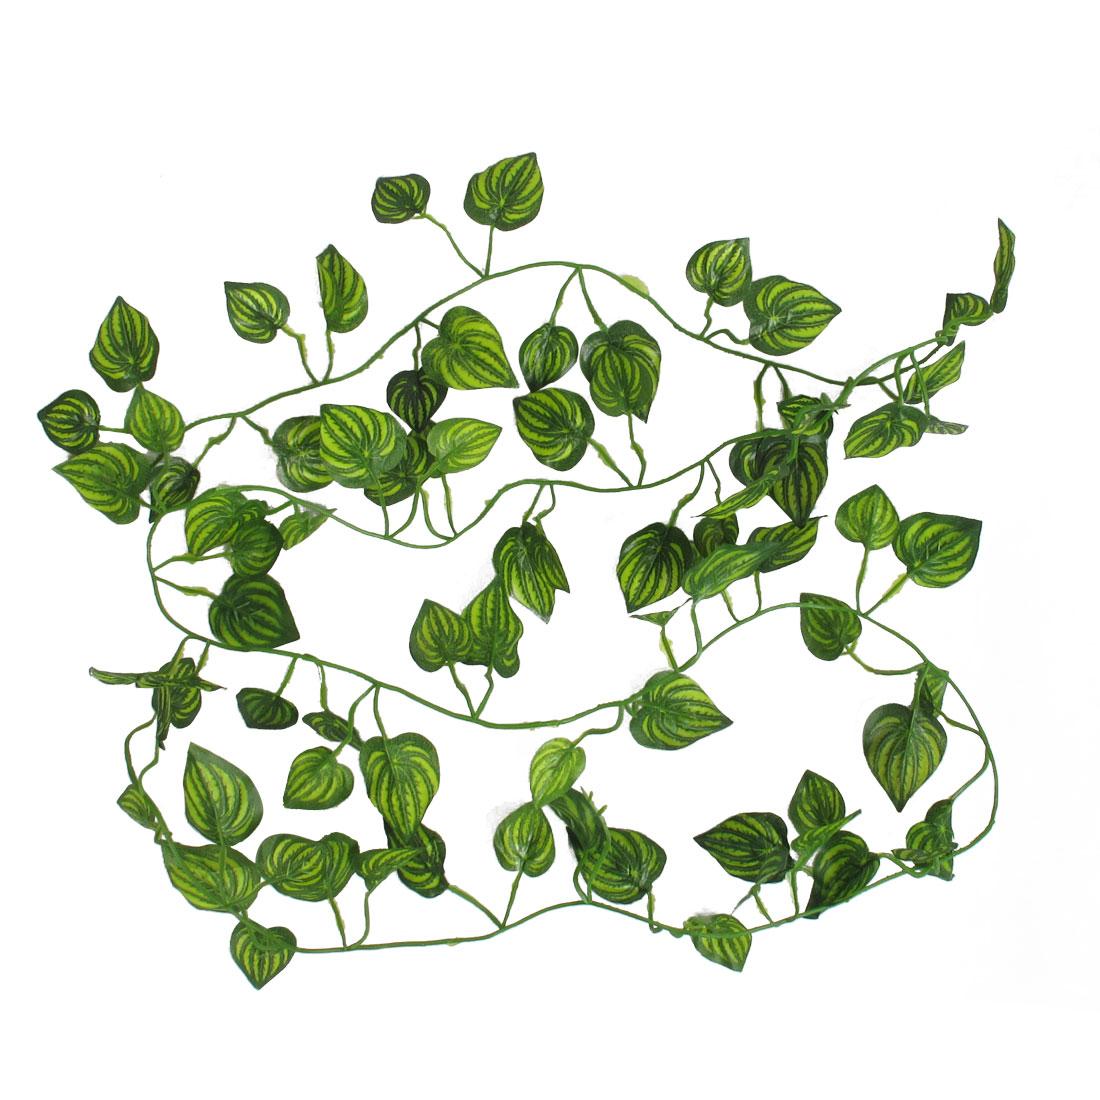 2.1M Length Simulated Garden Vine Plant Festival Party Decorative Leaves Green